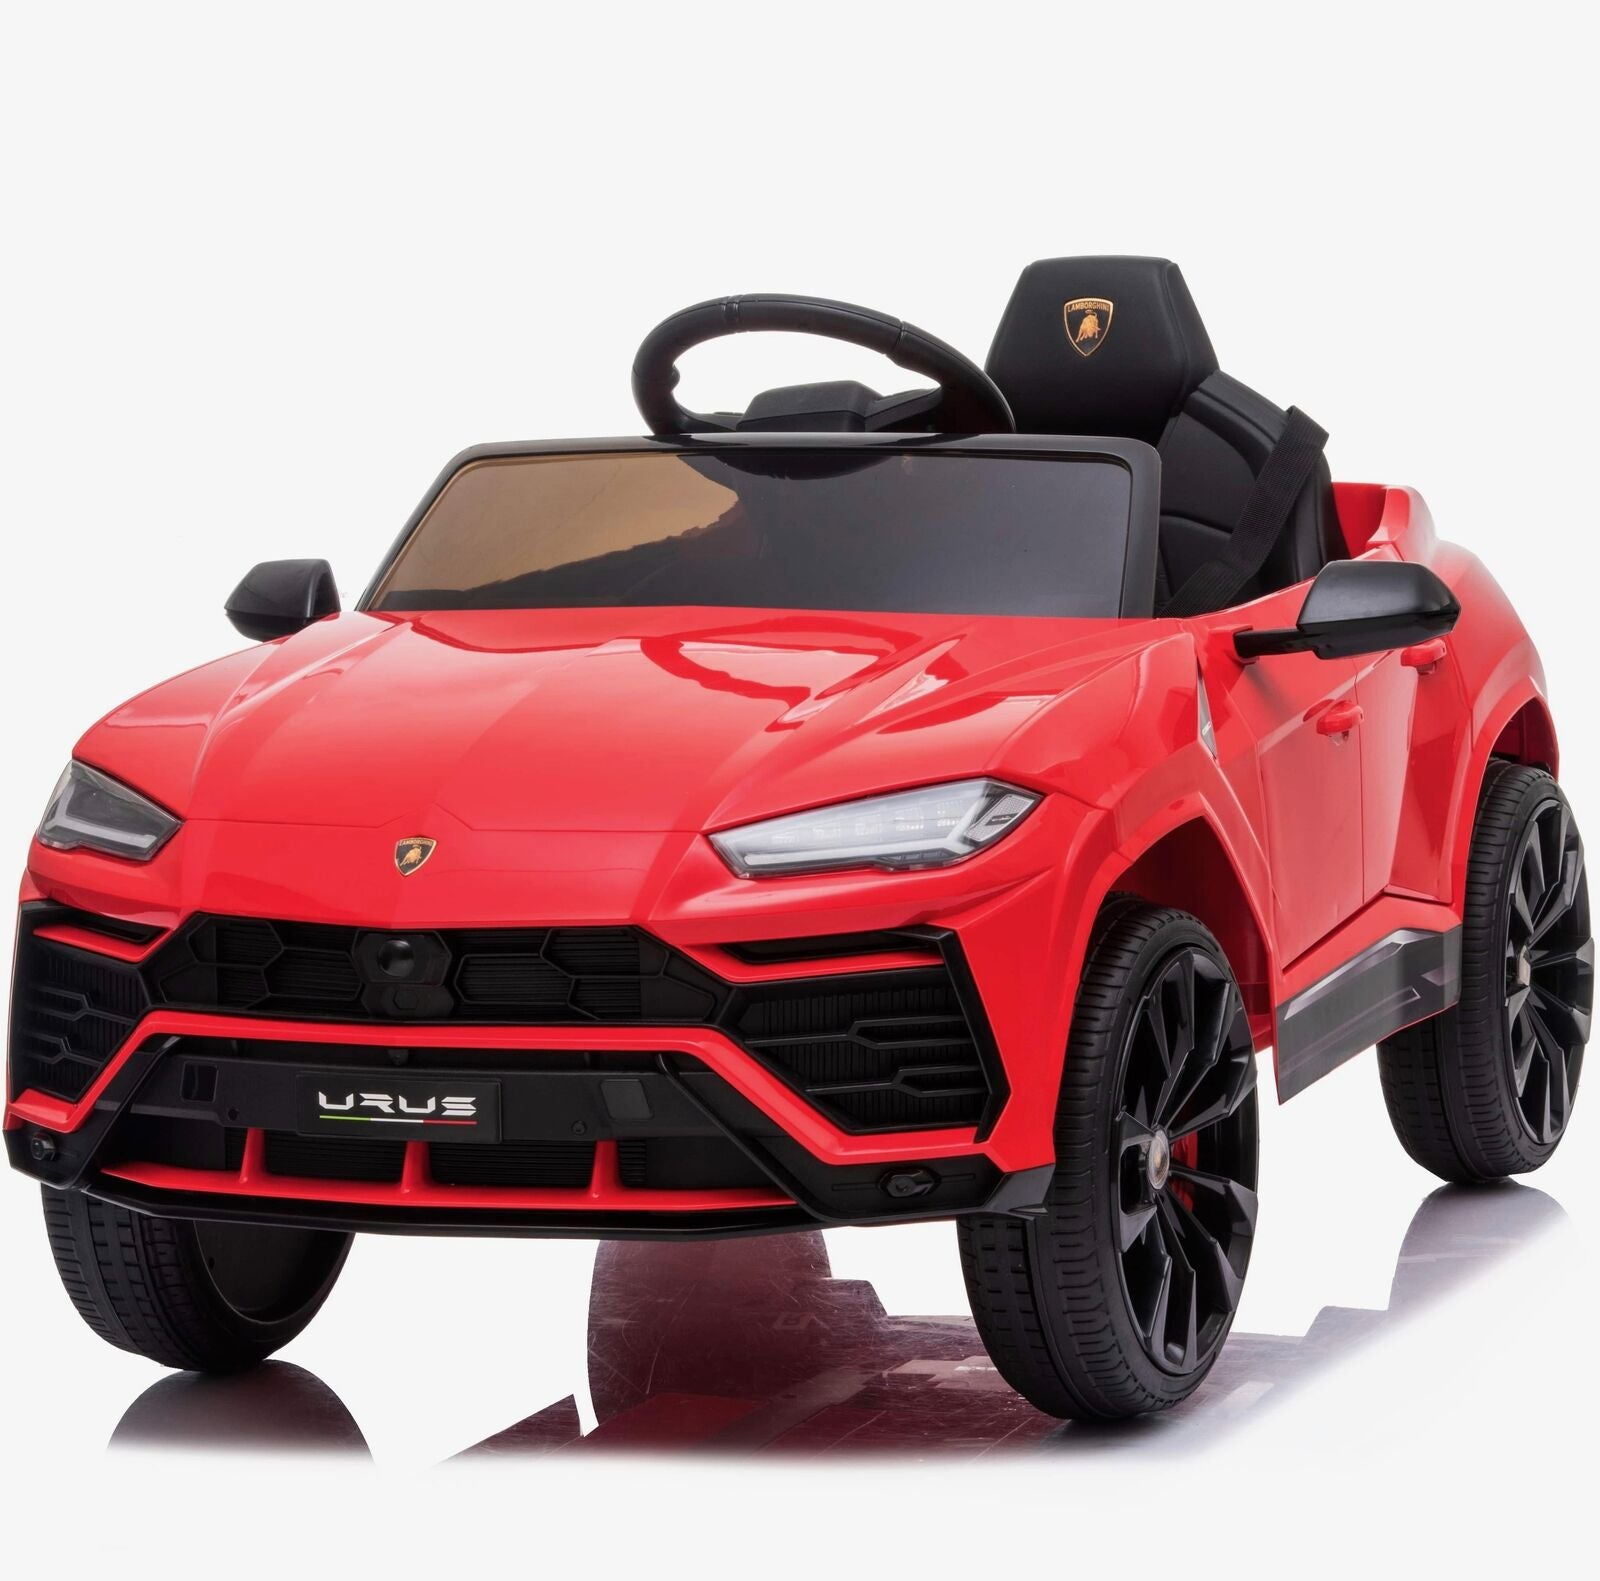 Licensed Lamborghini Urus 12V Ride On Children's Electric SUV Car - Red